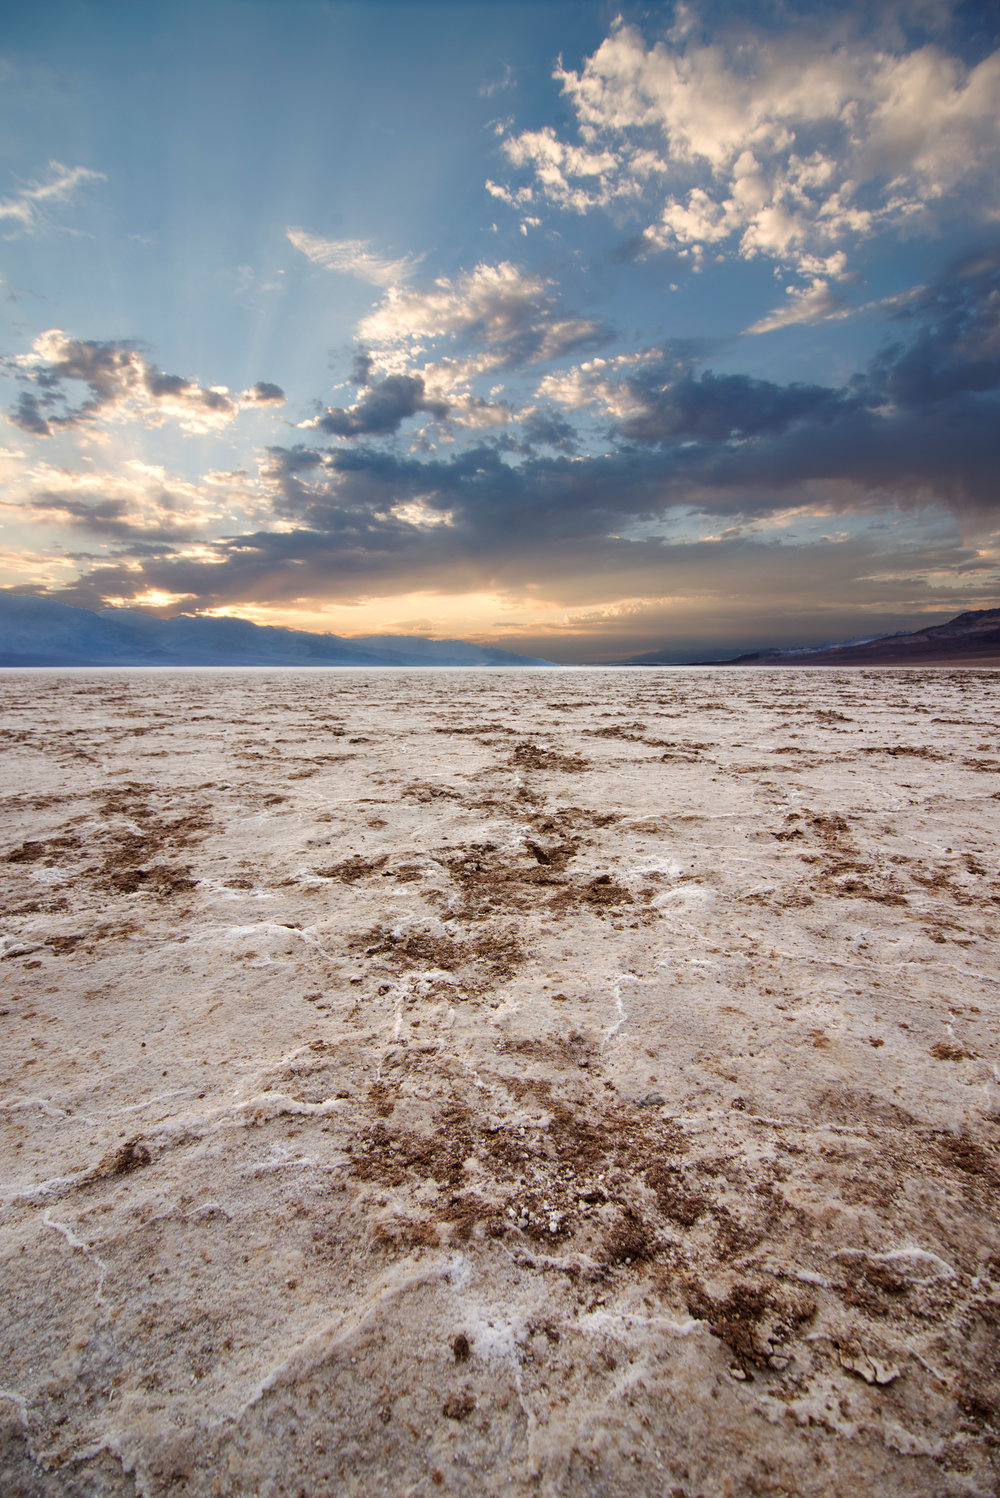 20170624_30_Trip_Death_Valley_Driving_Video_Badwater_Basin_060.jpg